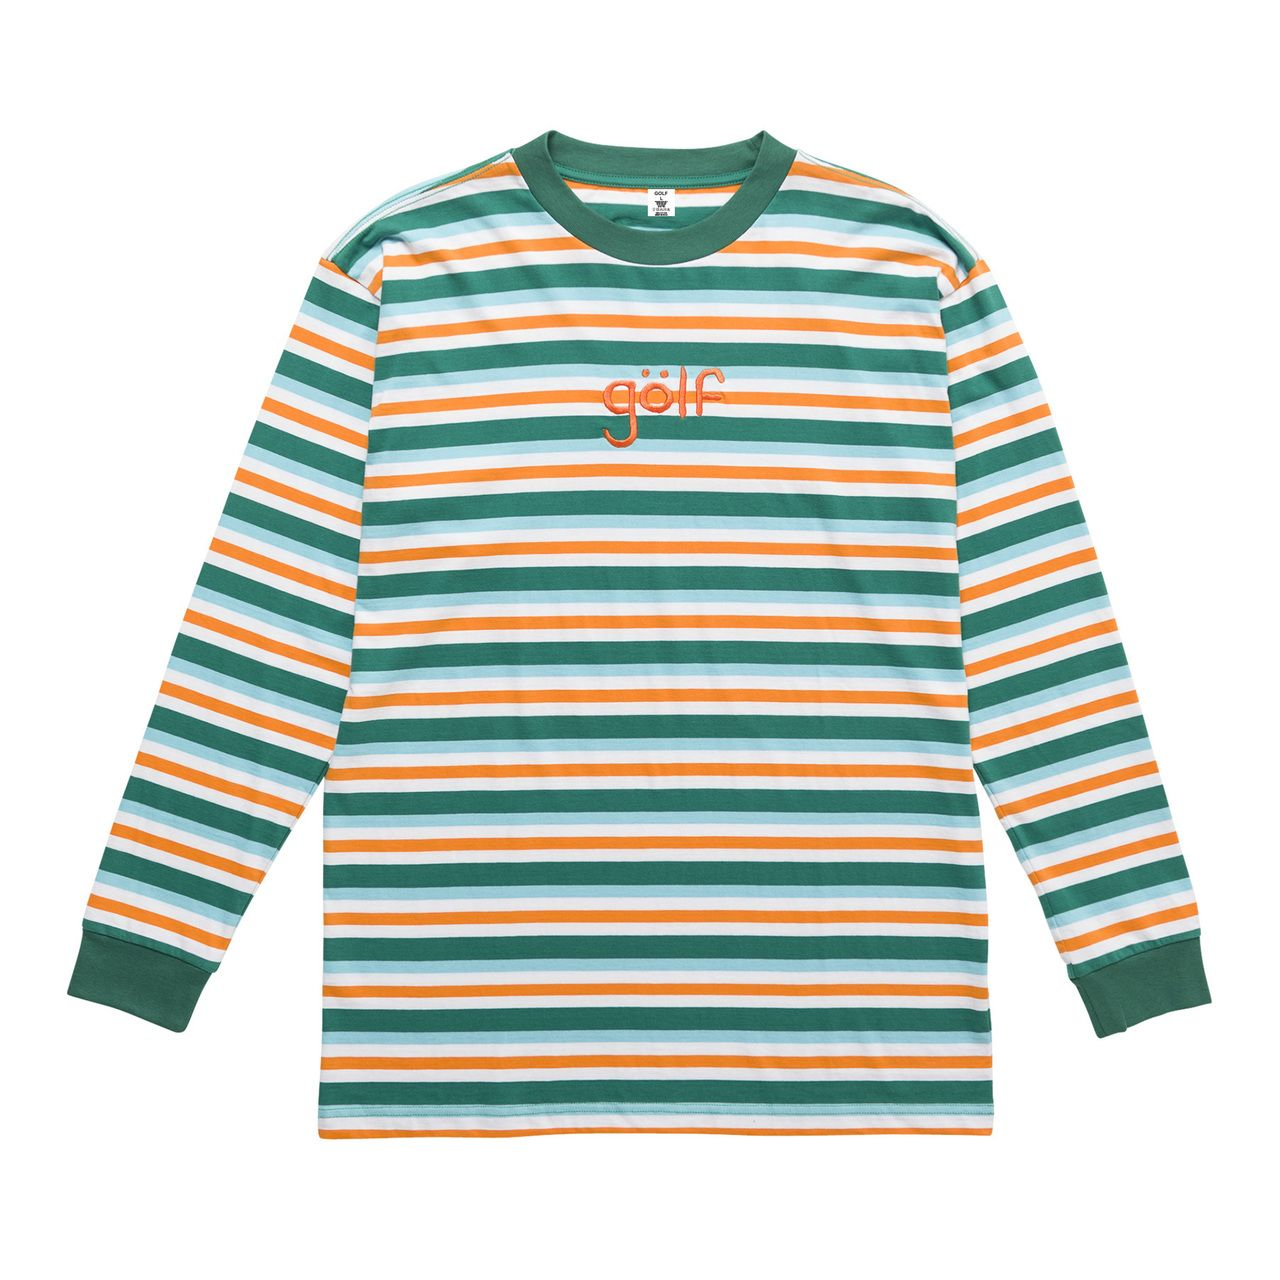 5500c752e578 GOLF EURO STRIPED LONGSLEEVE TEE - Golf Wang